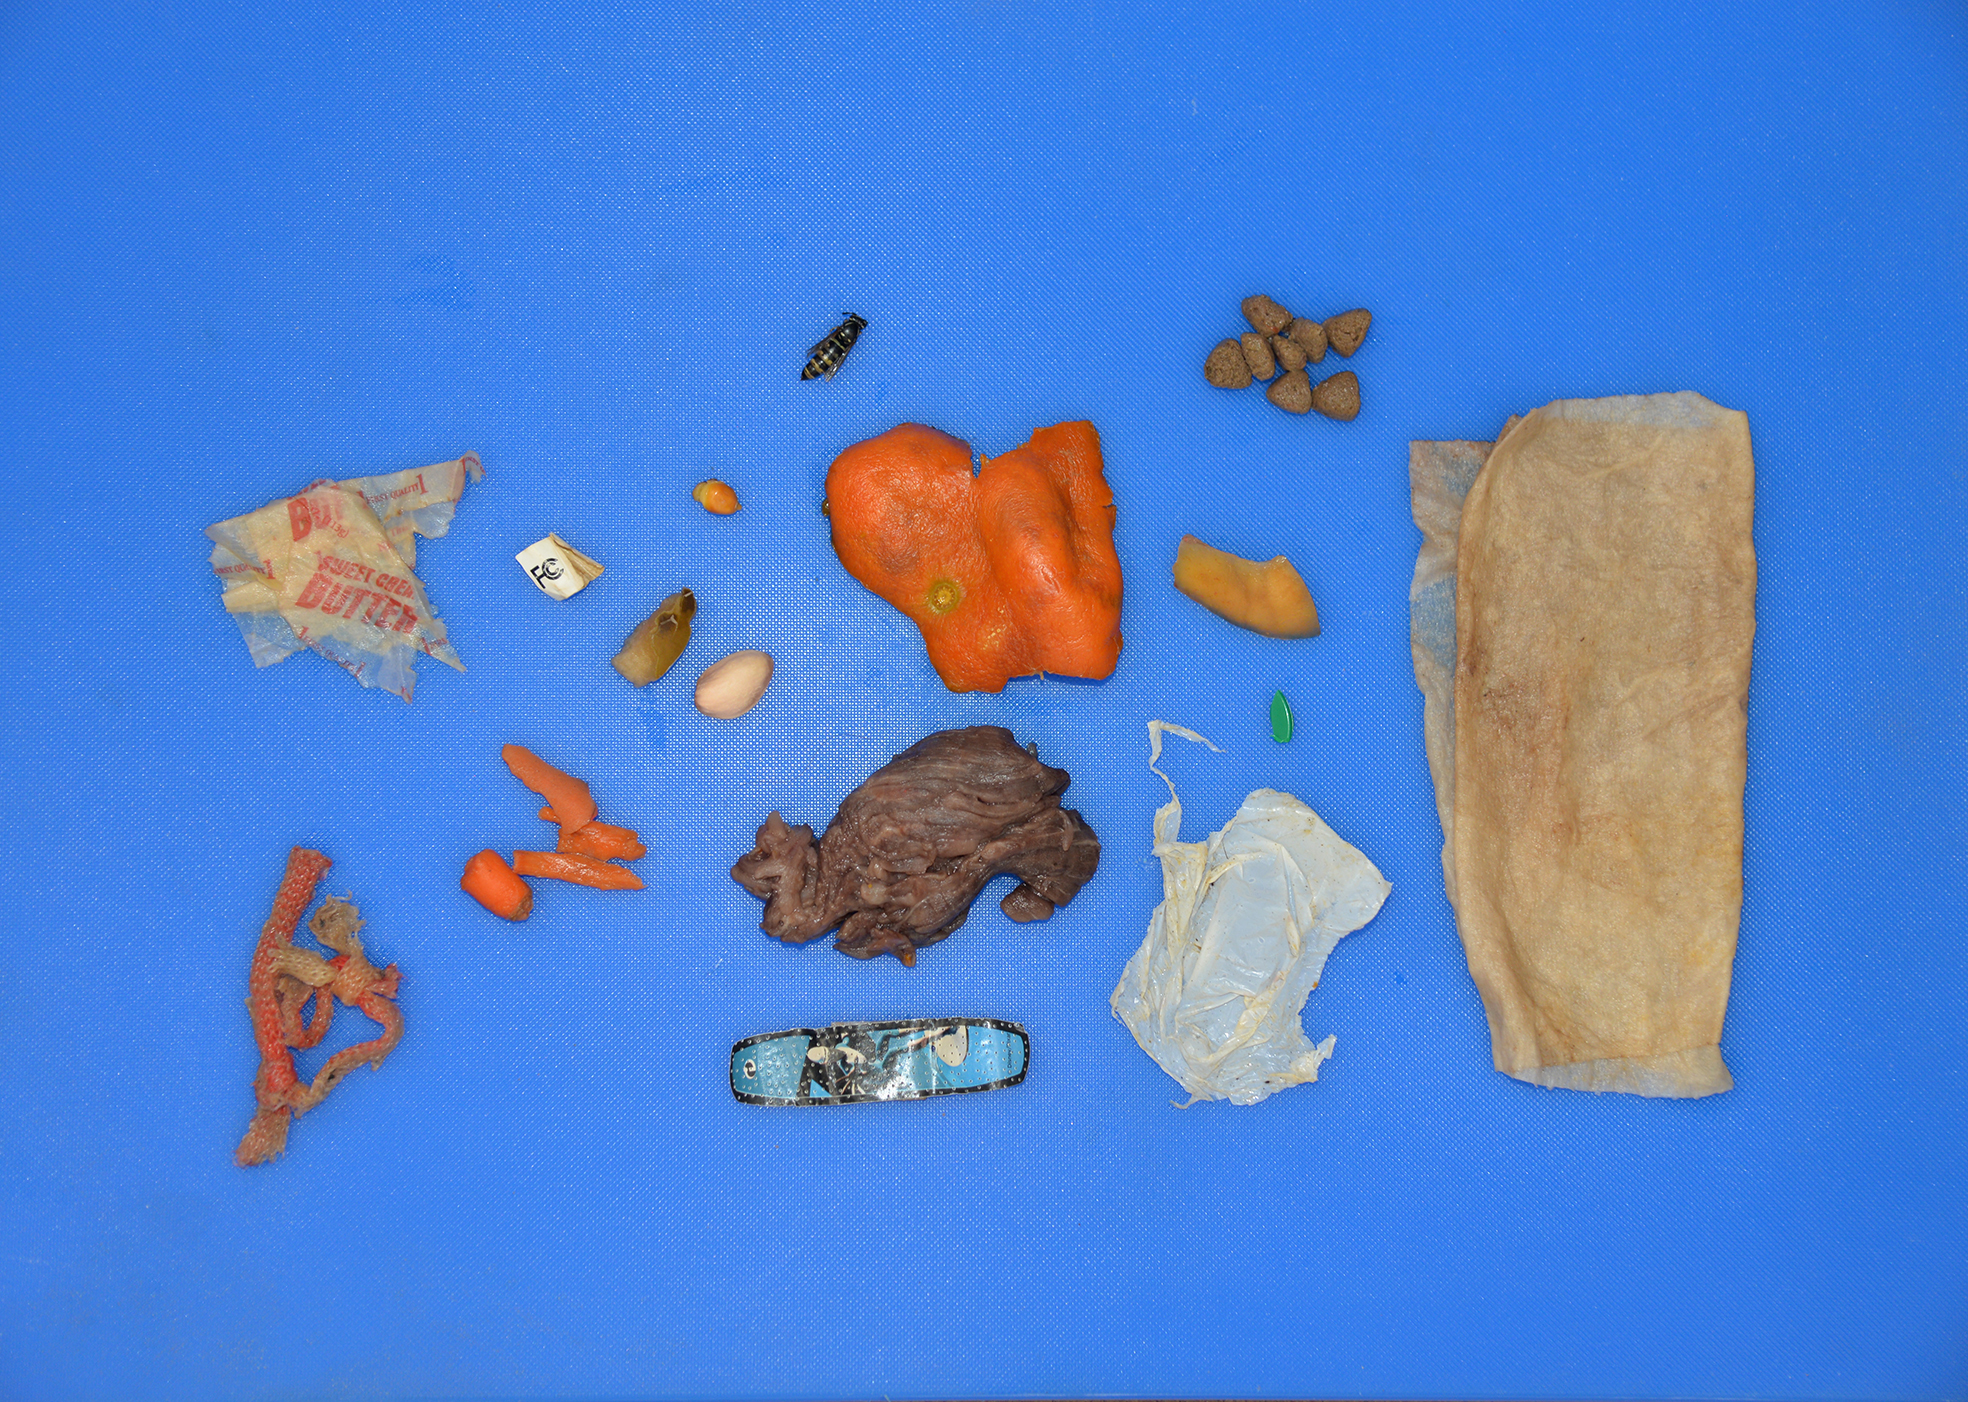 A photo of some of the stomach contents pulled from the sow during the necropsy showed it was full of a significant amount of trash. / Photo courtesy Colorado Parks and Wildlife